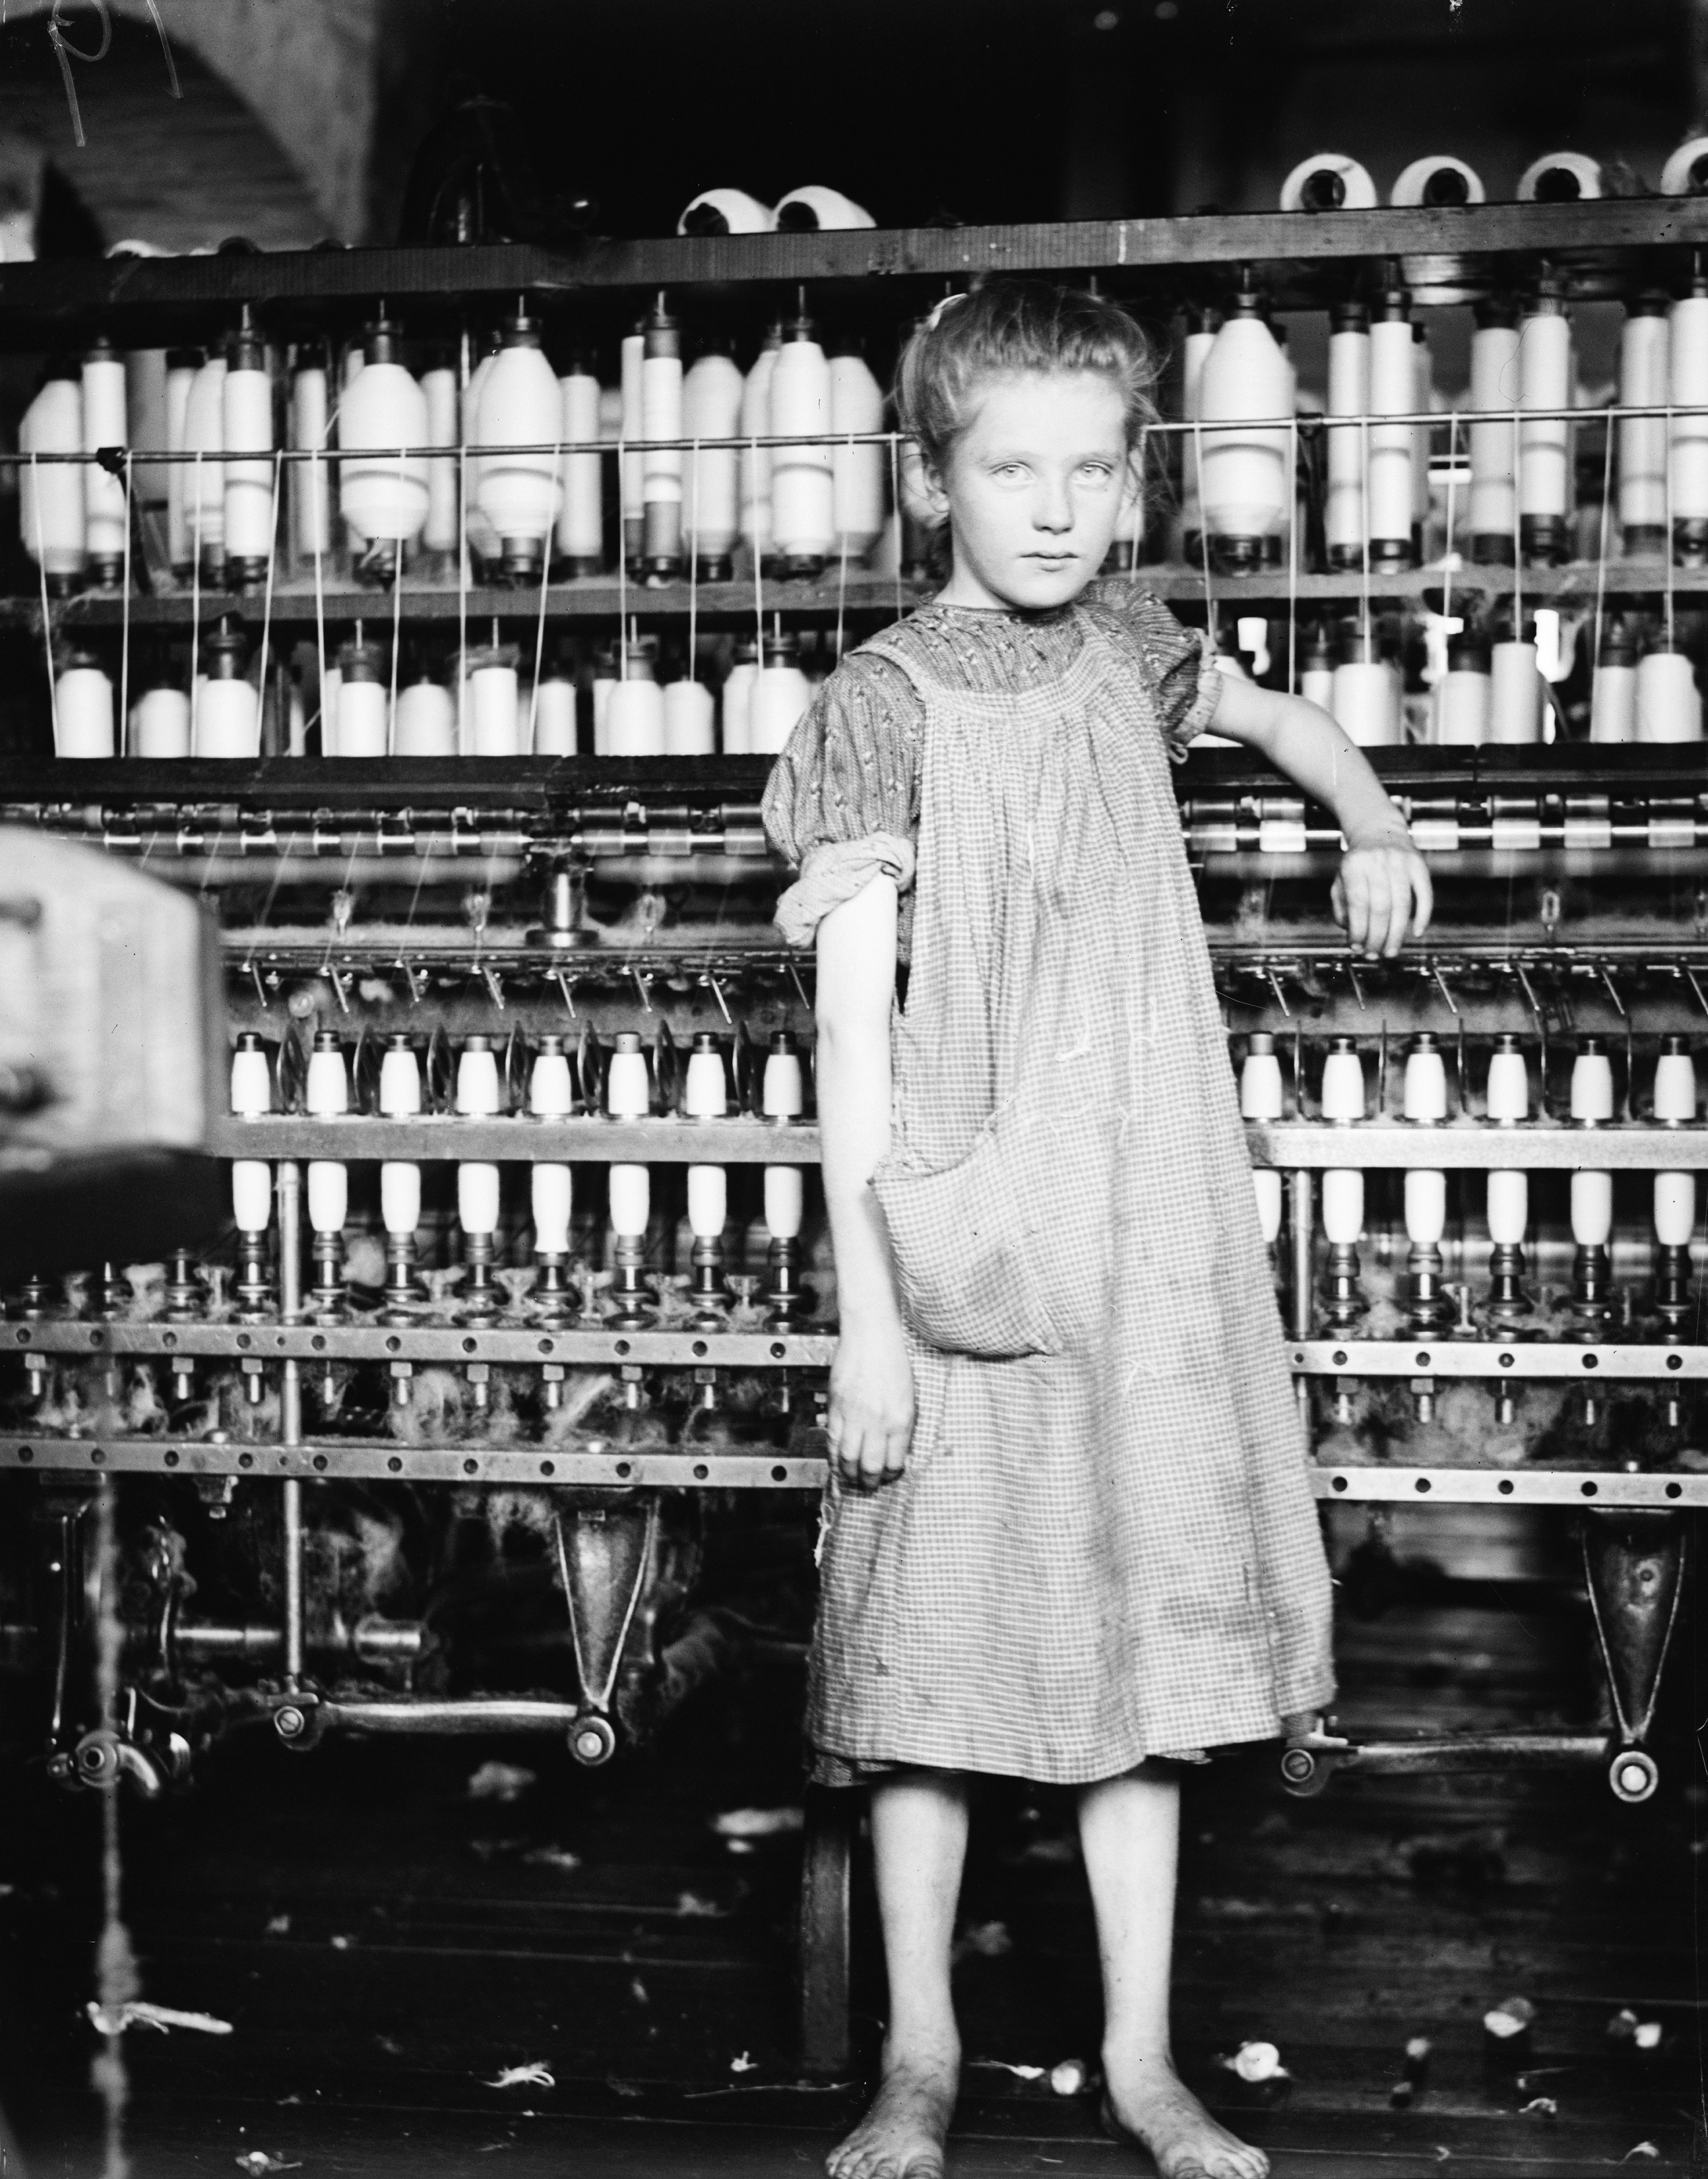 the role and importance of factory acts to protect children from child labor Employment law guide: worker protections in agriculture - migrant and seasonal agricultural worker protection act child labor protections important web site.